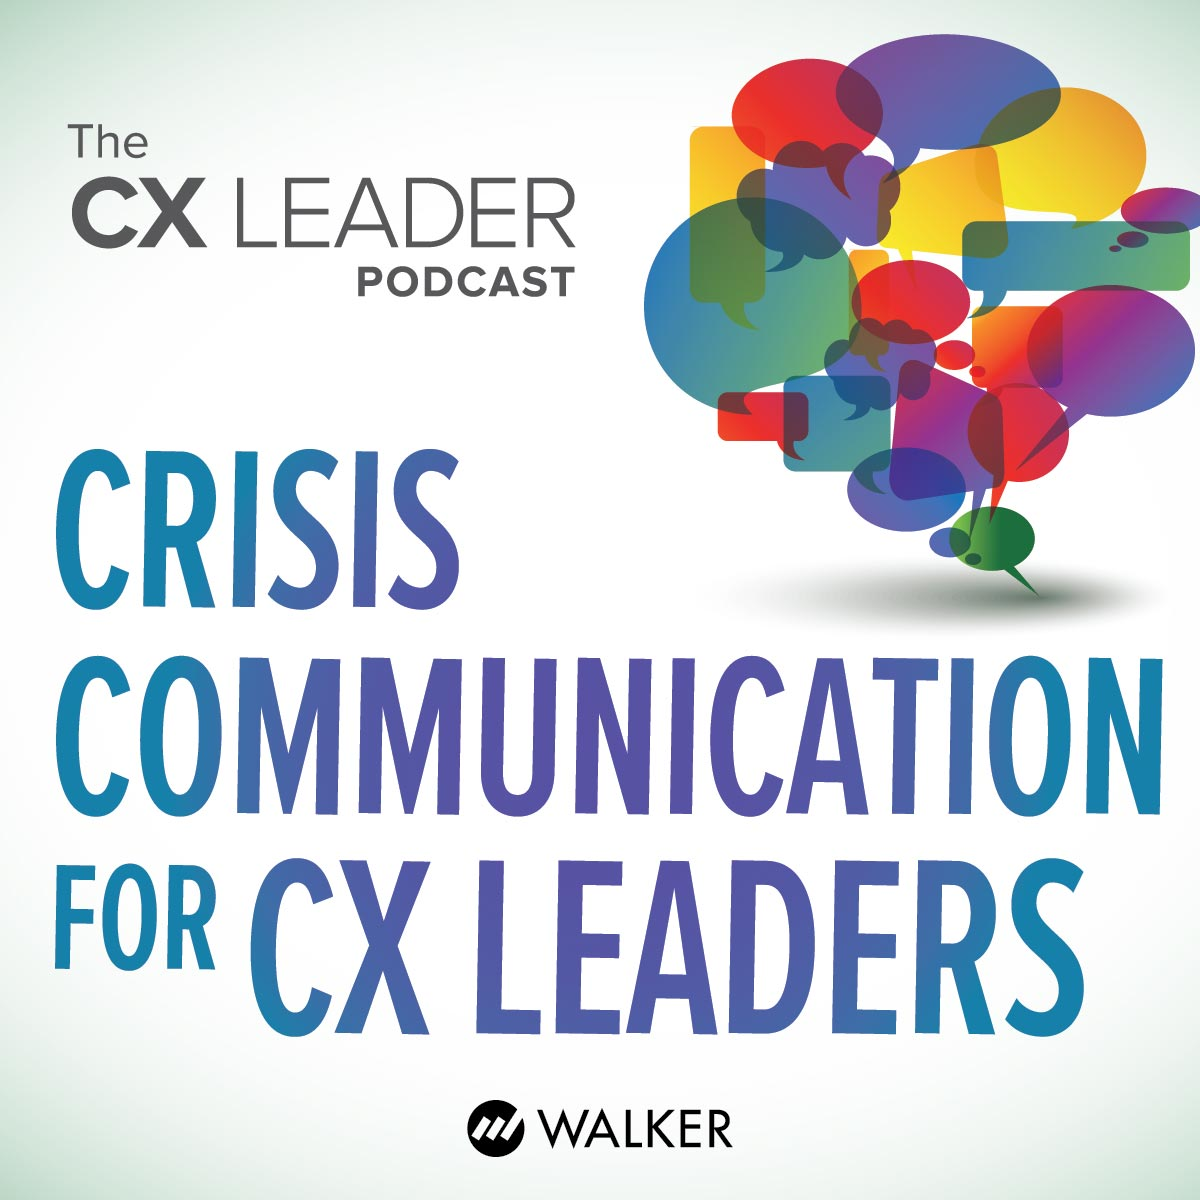 Crisis Communication for CX Leaders